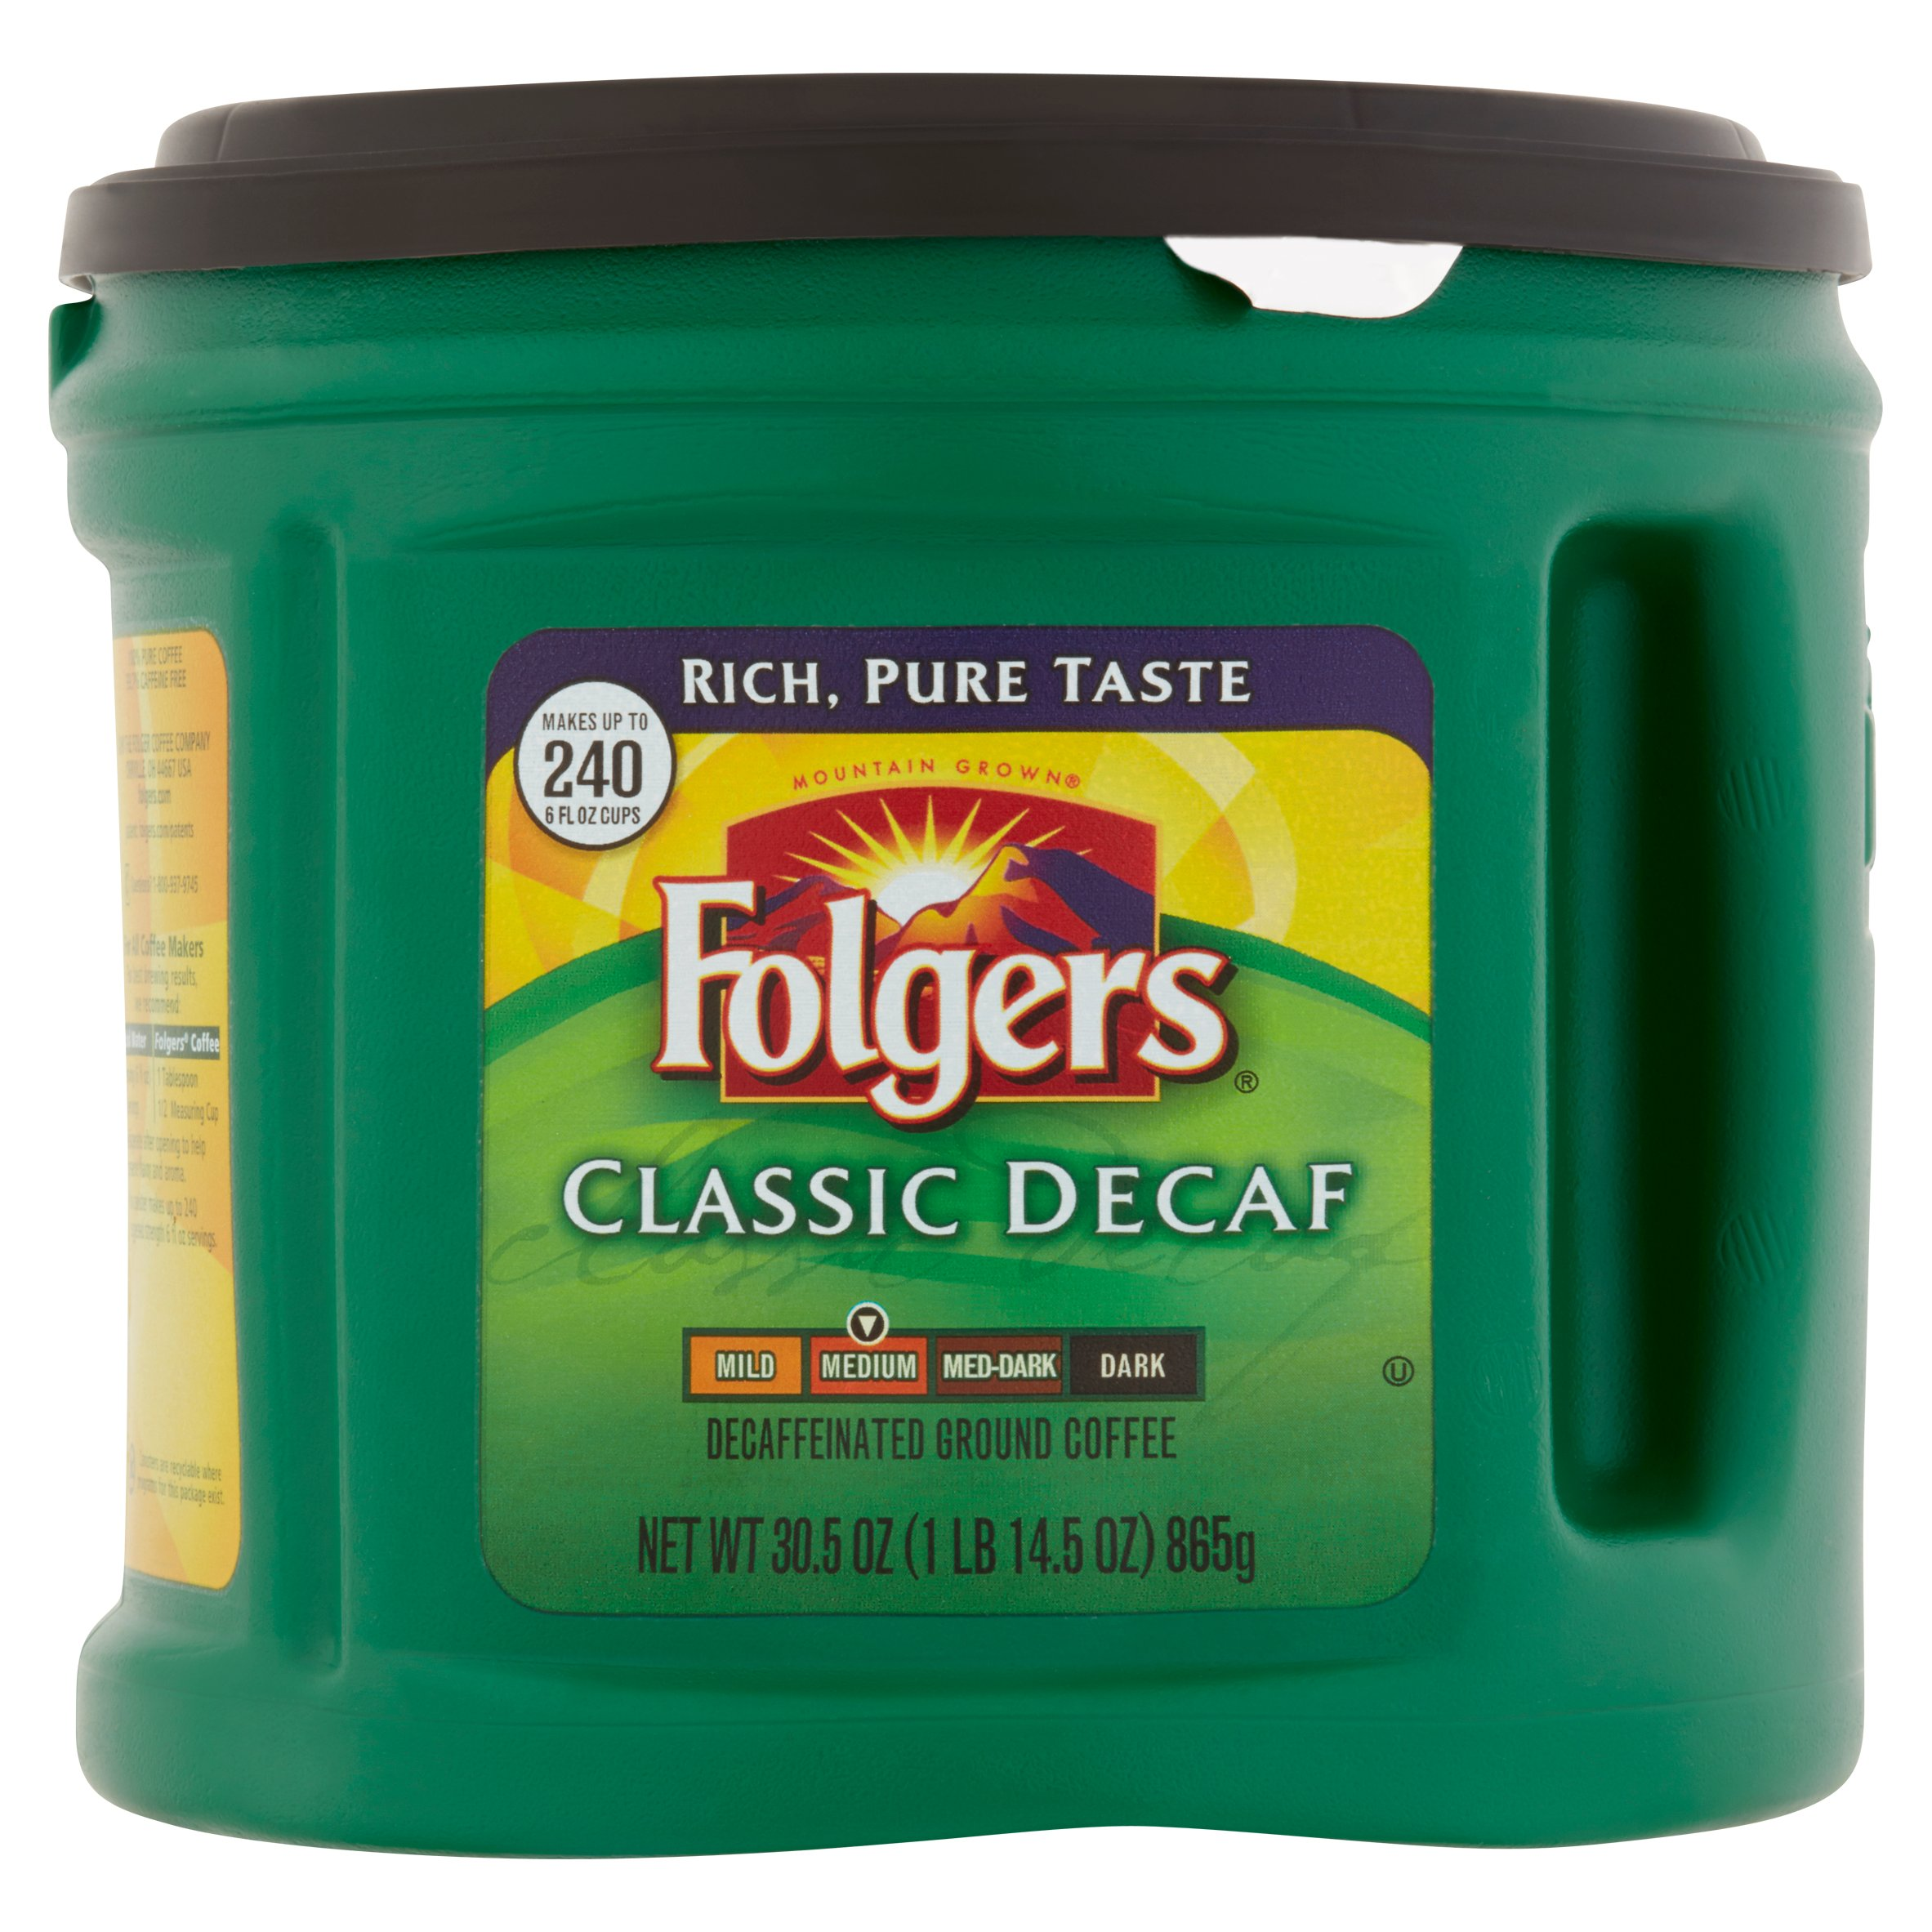 Folgers Classic Decaf Medium Ground Coffee, 30.5 oz